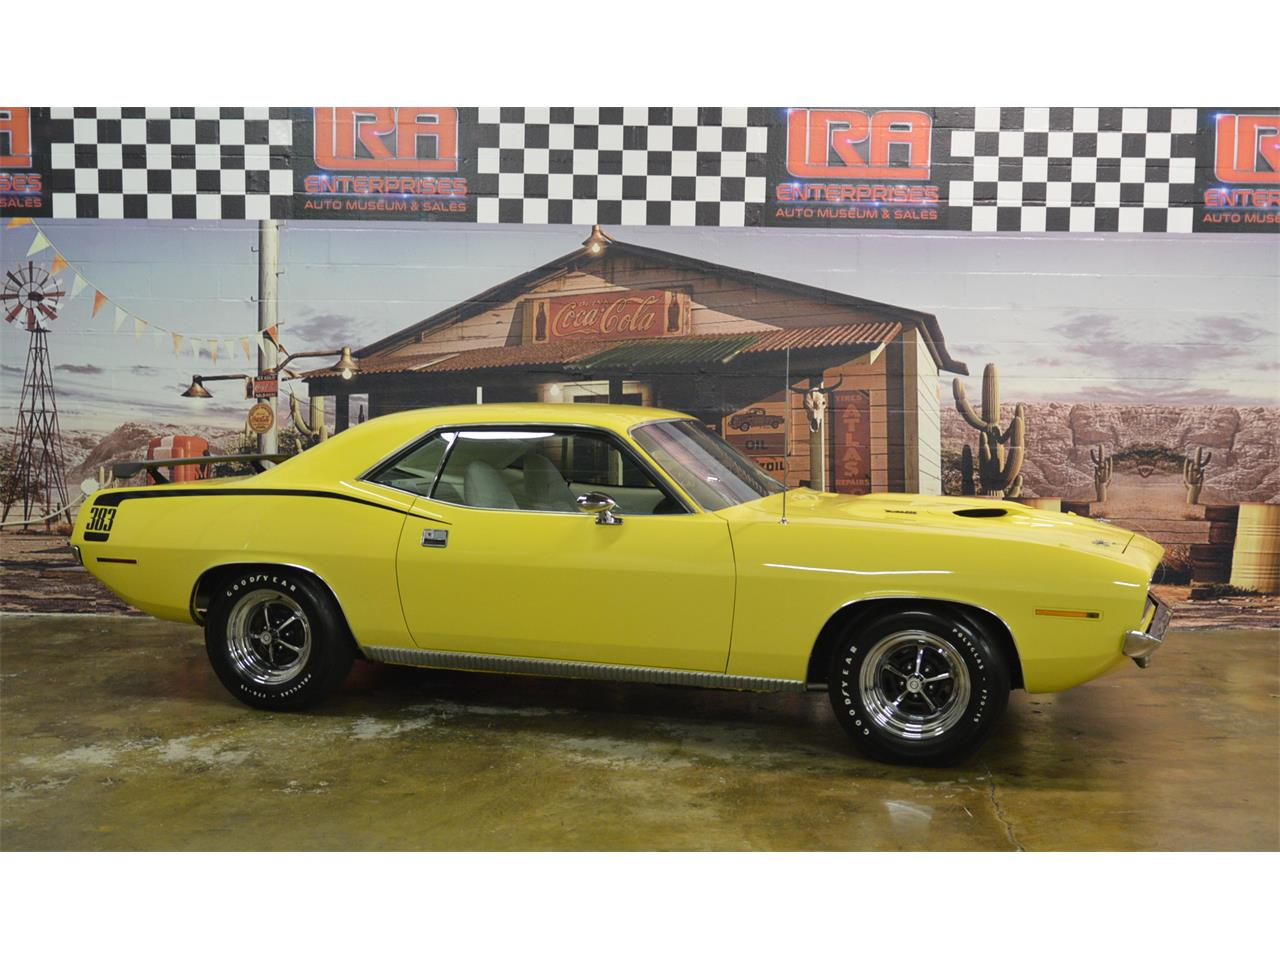 Large Picture of Classic 1970 Plymouth Cuda located in Bristol Pennsylvania - $59,900.00 Offered by L.R.A. Enterprises Auto Museum & Sales - MD67